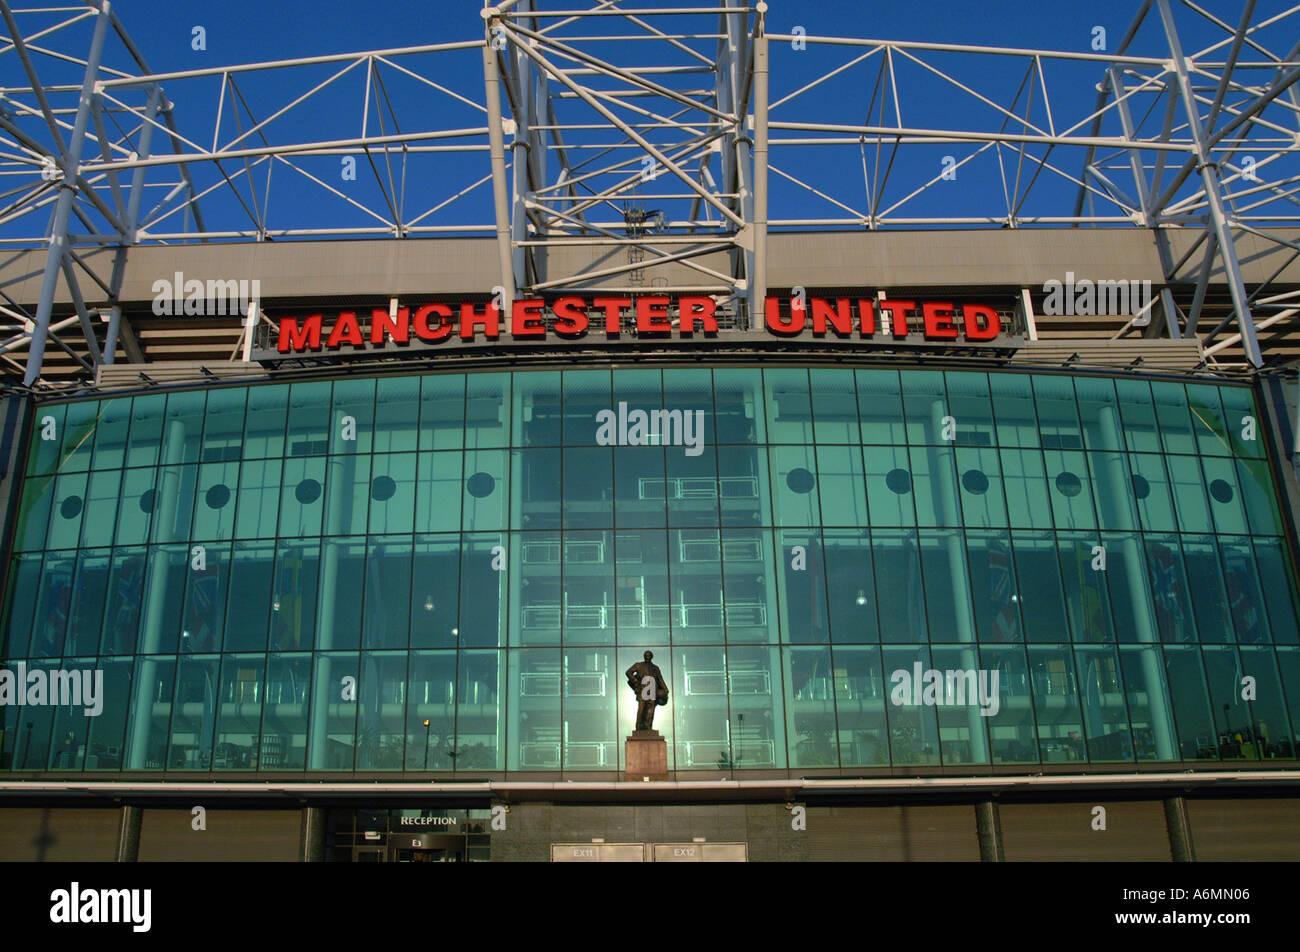 manchester united football ground old trafford front entrance stock photo alamy https www alamy com manchester united football ground old trafford front entrance image3790085 html